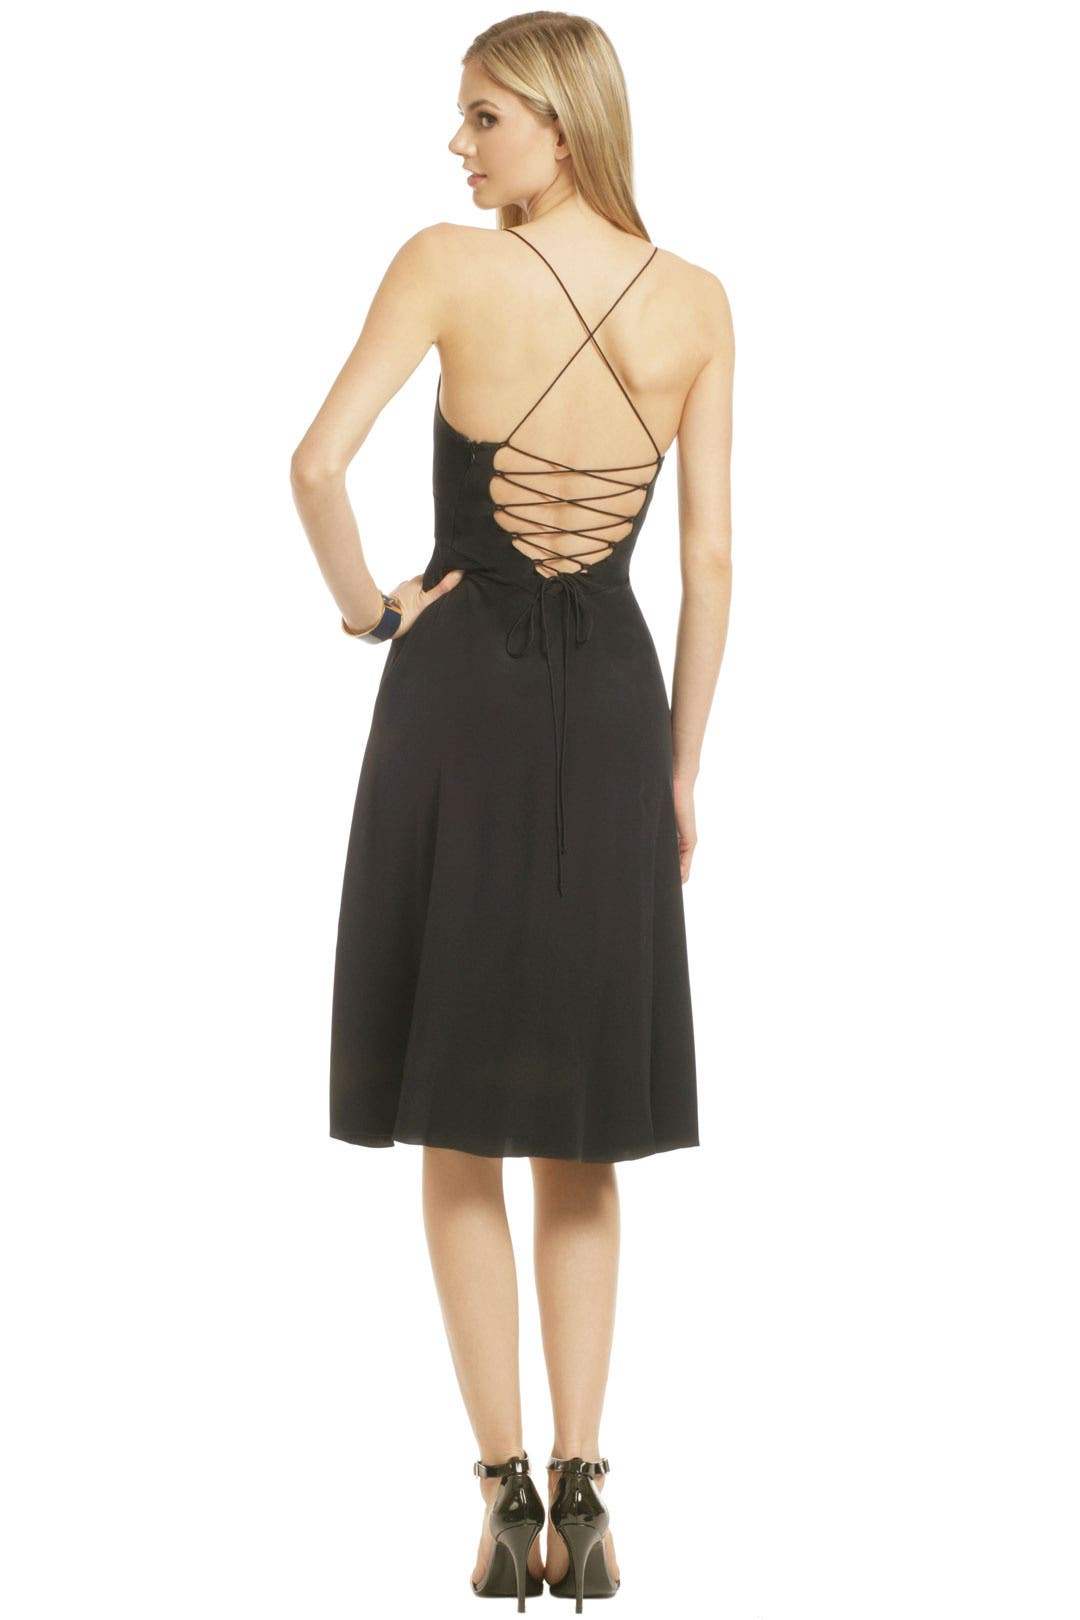 Waist Cincher Dress by Tibi